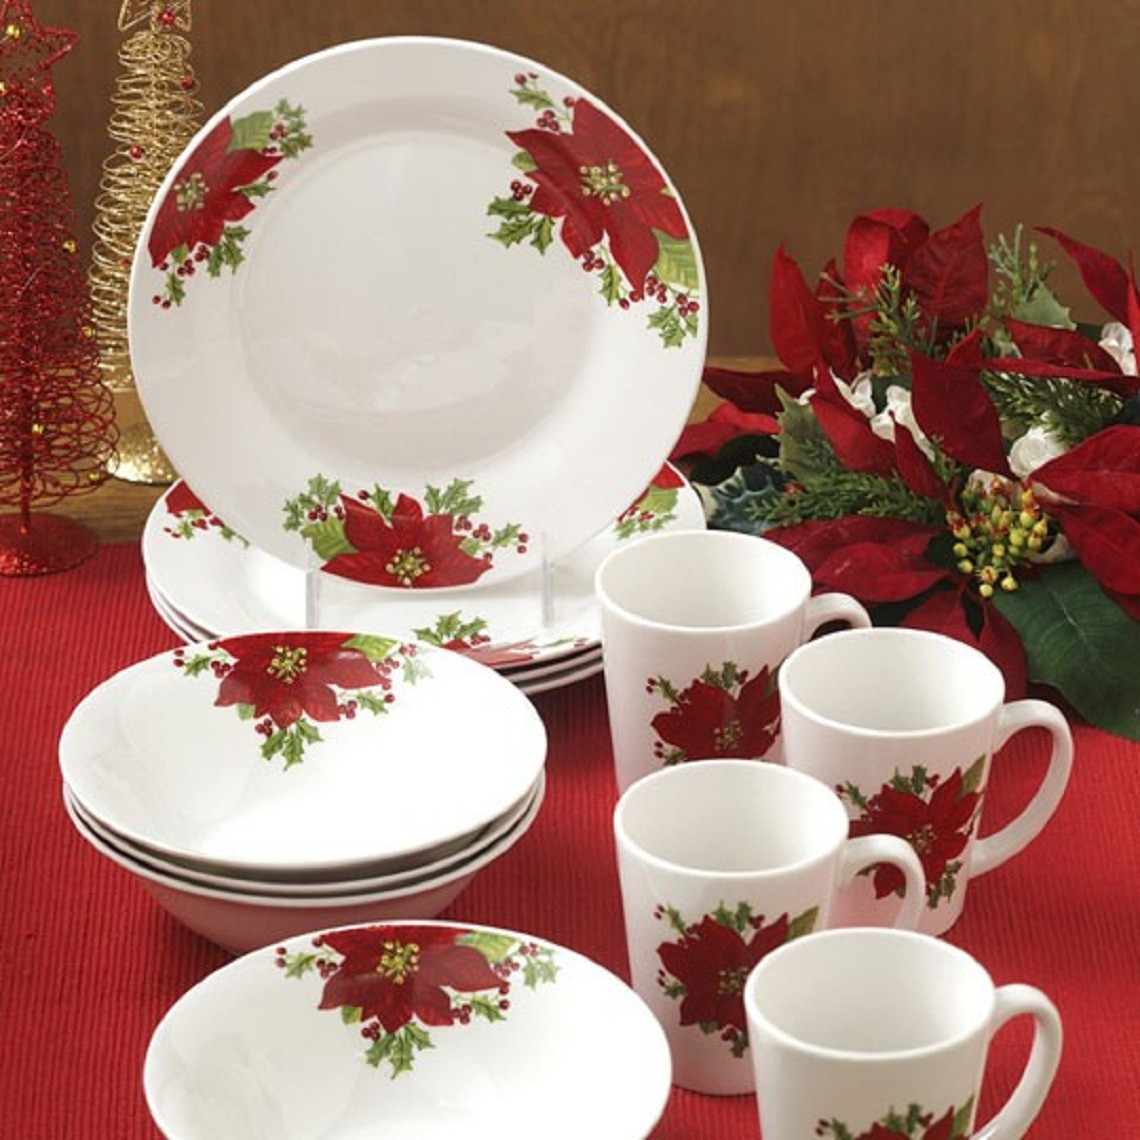 Christmas Dinner Set  Christmas Holidays Poinsettia 12 Piece Dinnerware Set